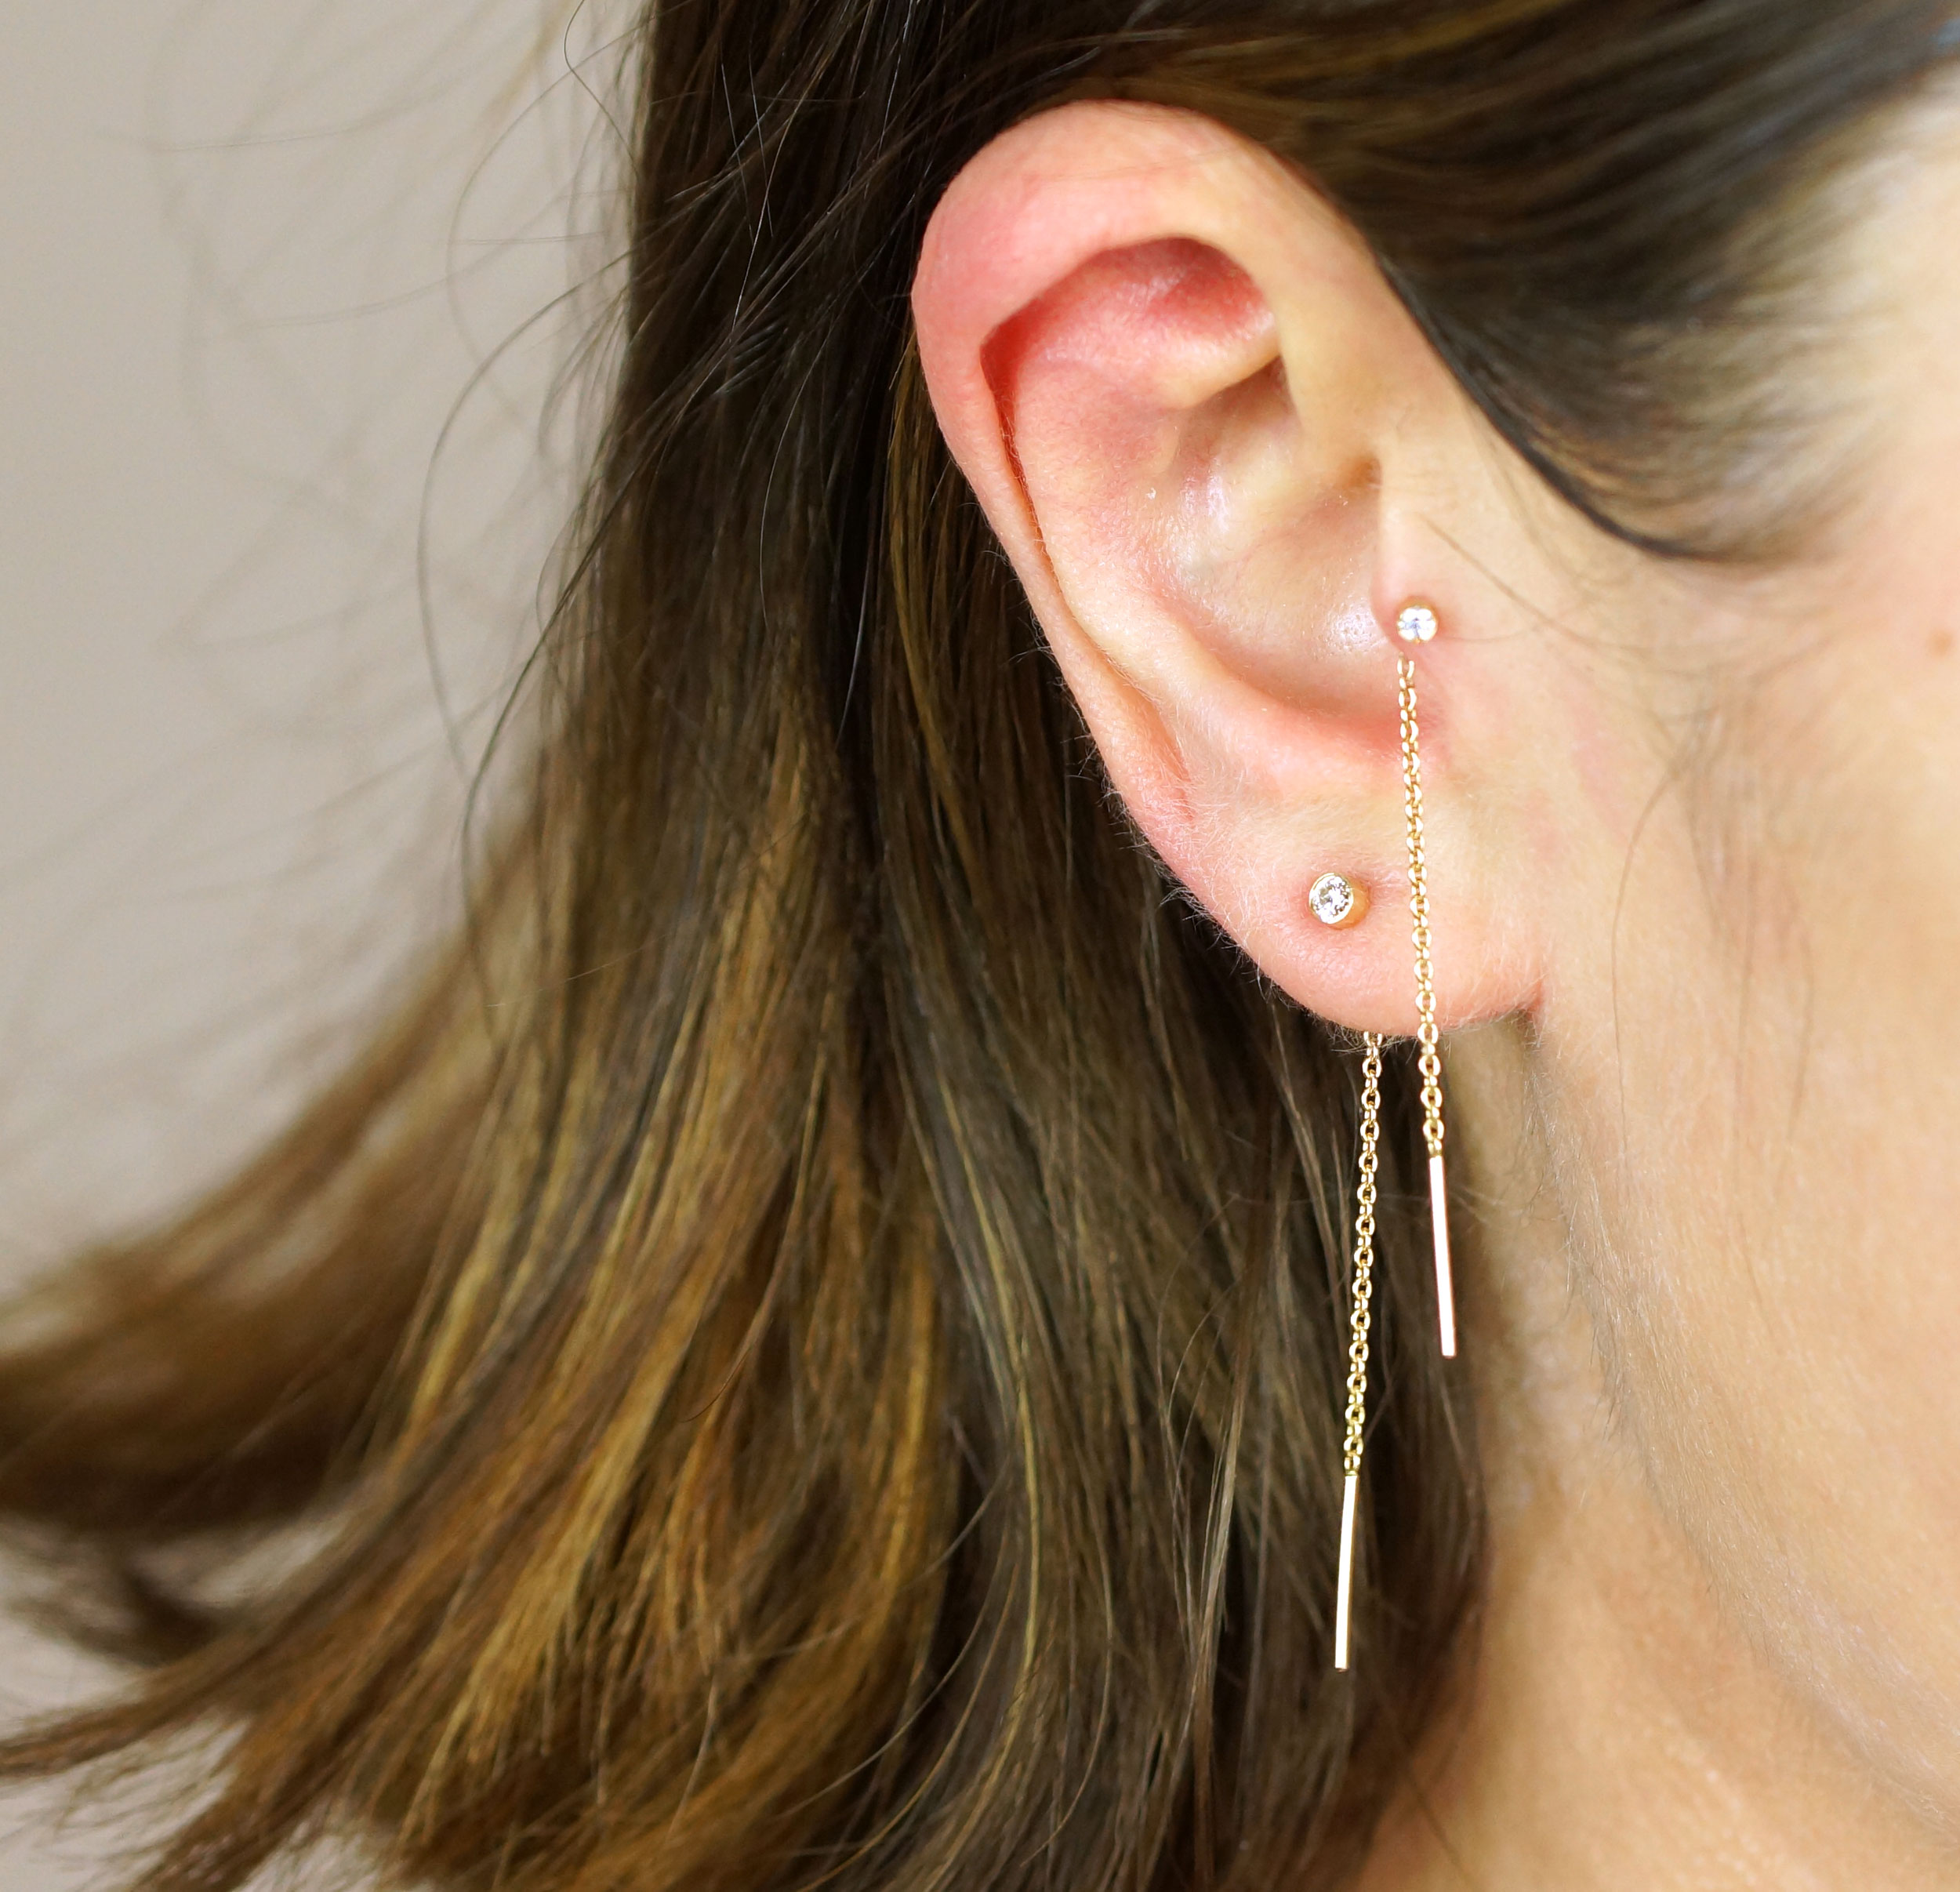 These sophisticated cartilage earrings feature glittering natural diamond in a delicate setting with stylish pyramid screw backs. These smart classic jewellery radiate sophisticated elegance and crisp shapes, and are a must-have item within any style preference.